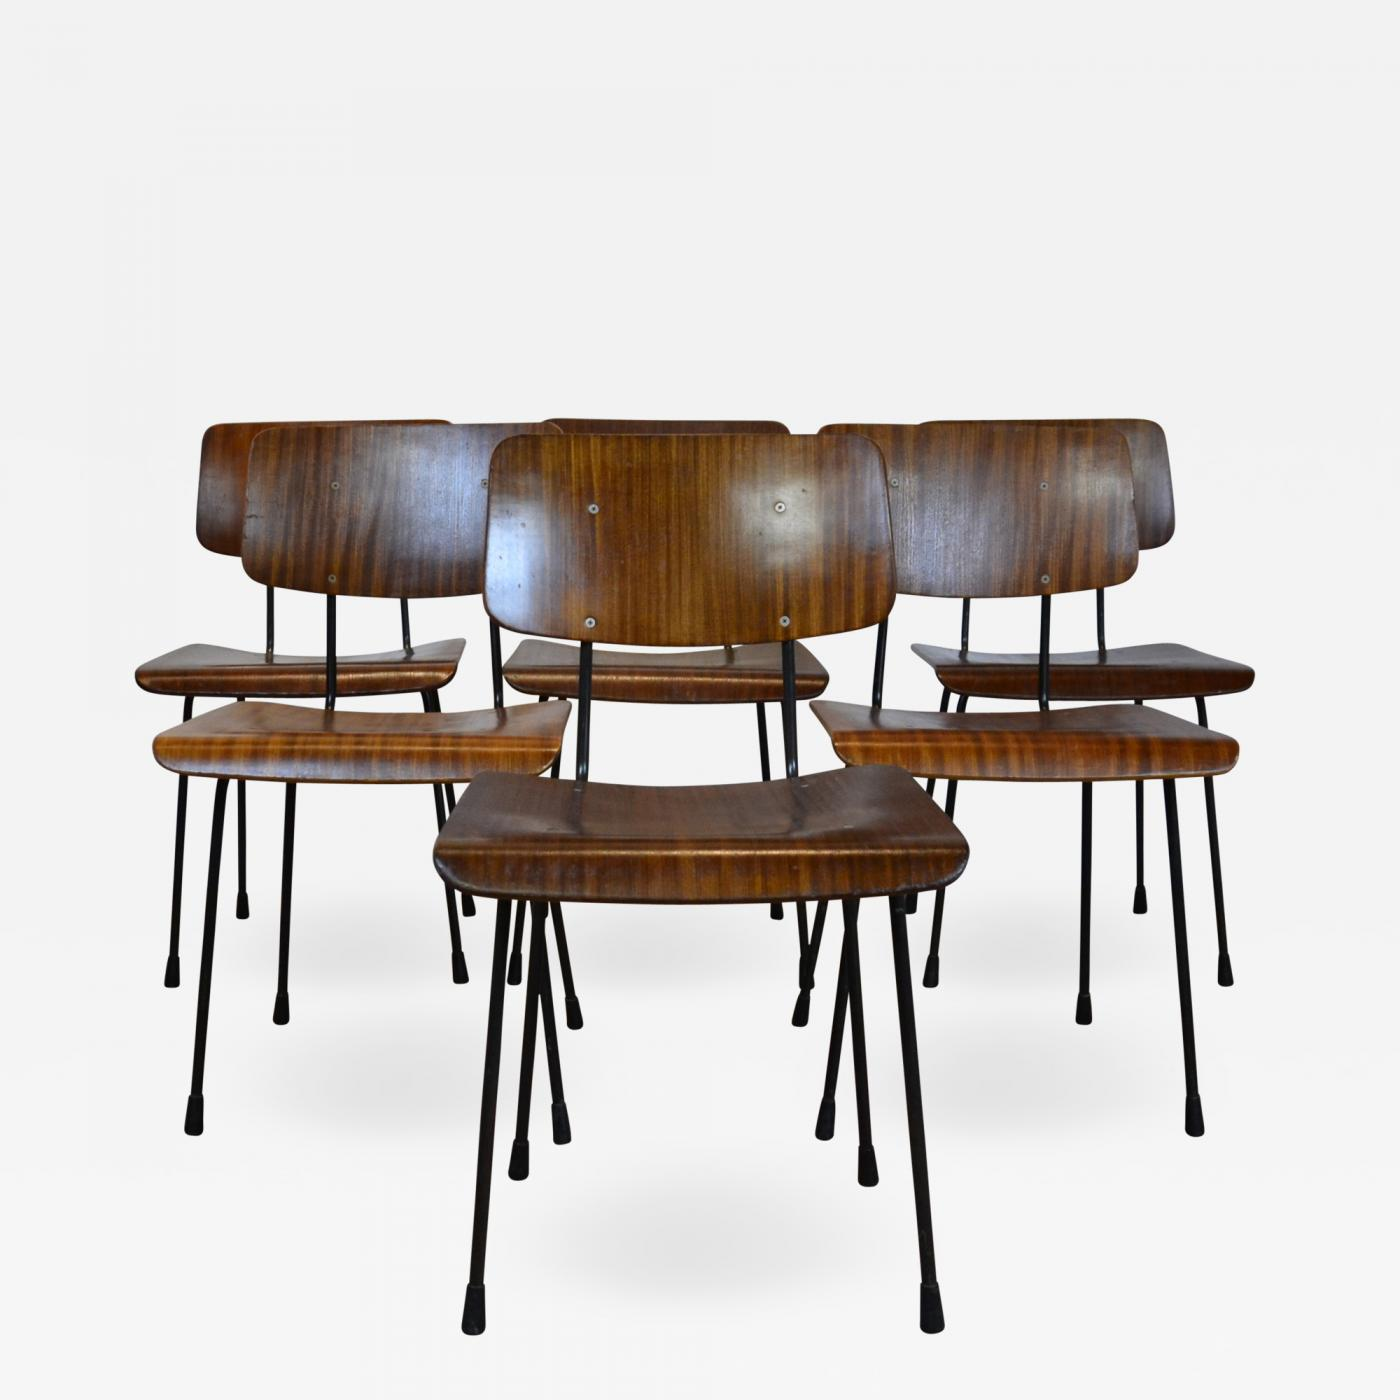 Fabulous Bent Wood Dining Chairs Gmtry Best Dining Table And Chair Ideas Images Gmtryco